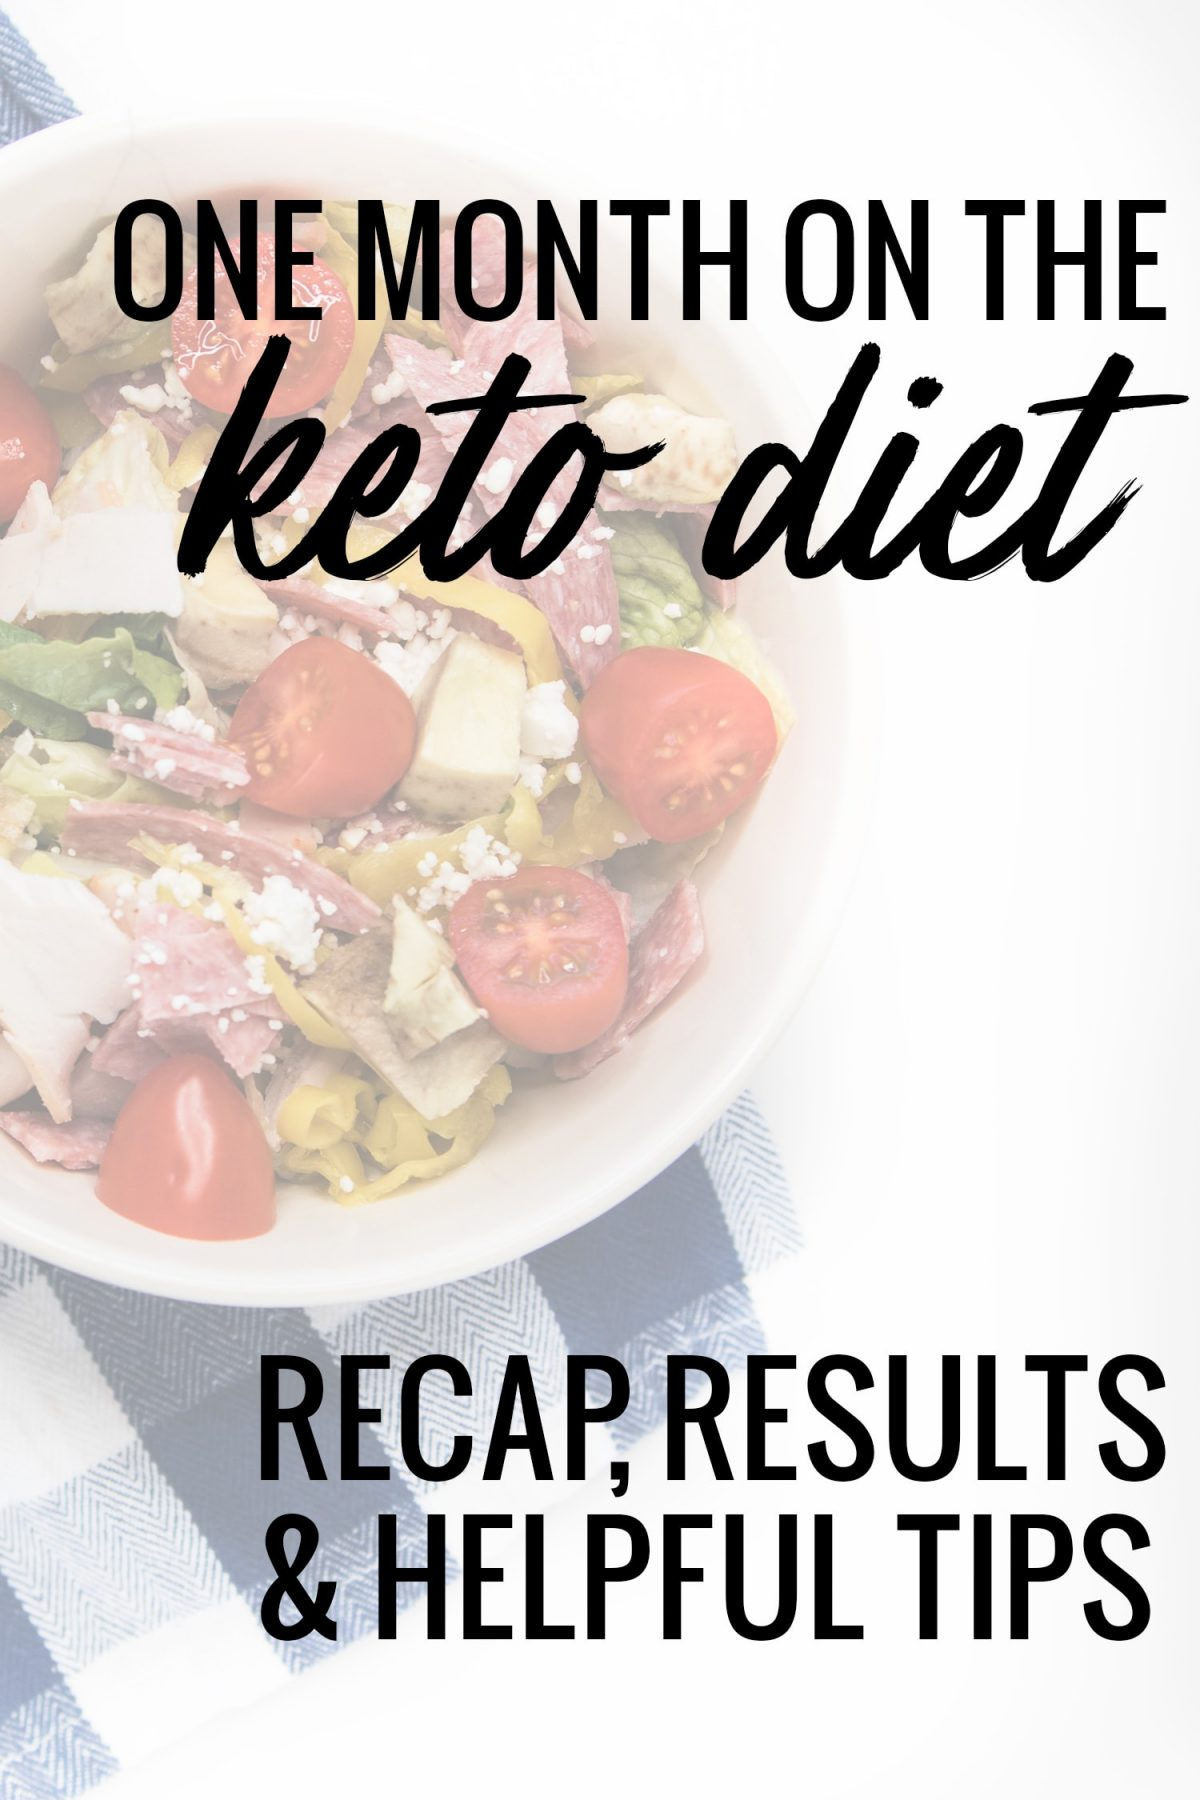 Houston blogger Meg O. on the Go shares a recap of her month on the keto diet.